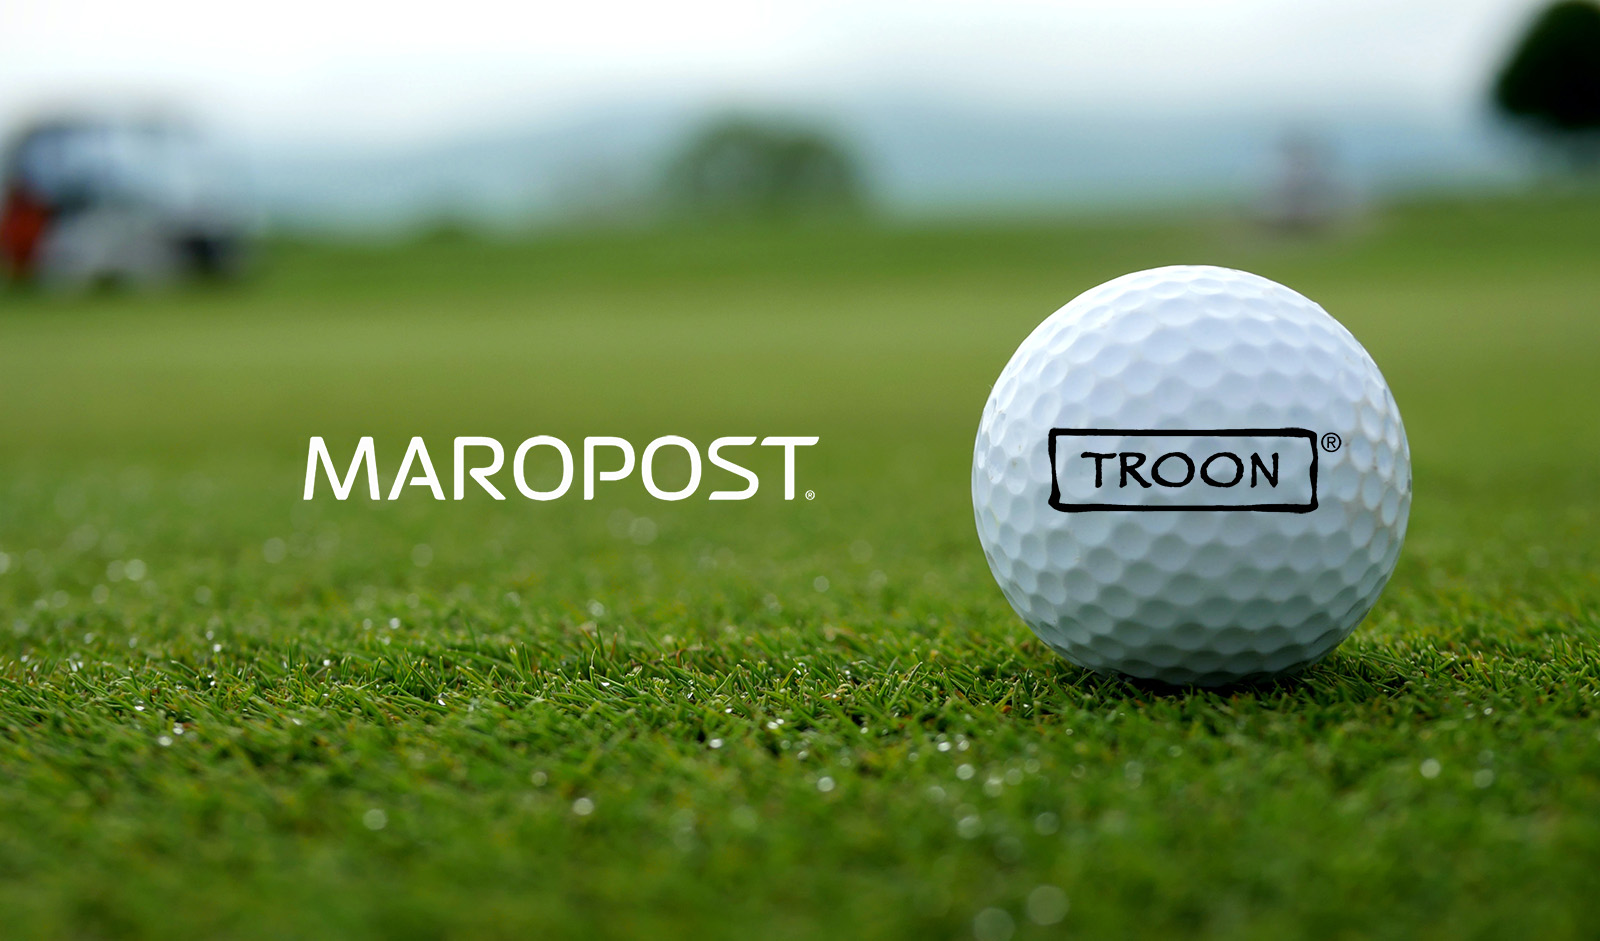 Maropost signs leader in golf management, Troon as a client